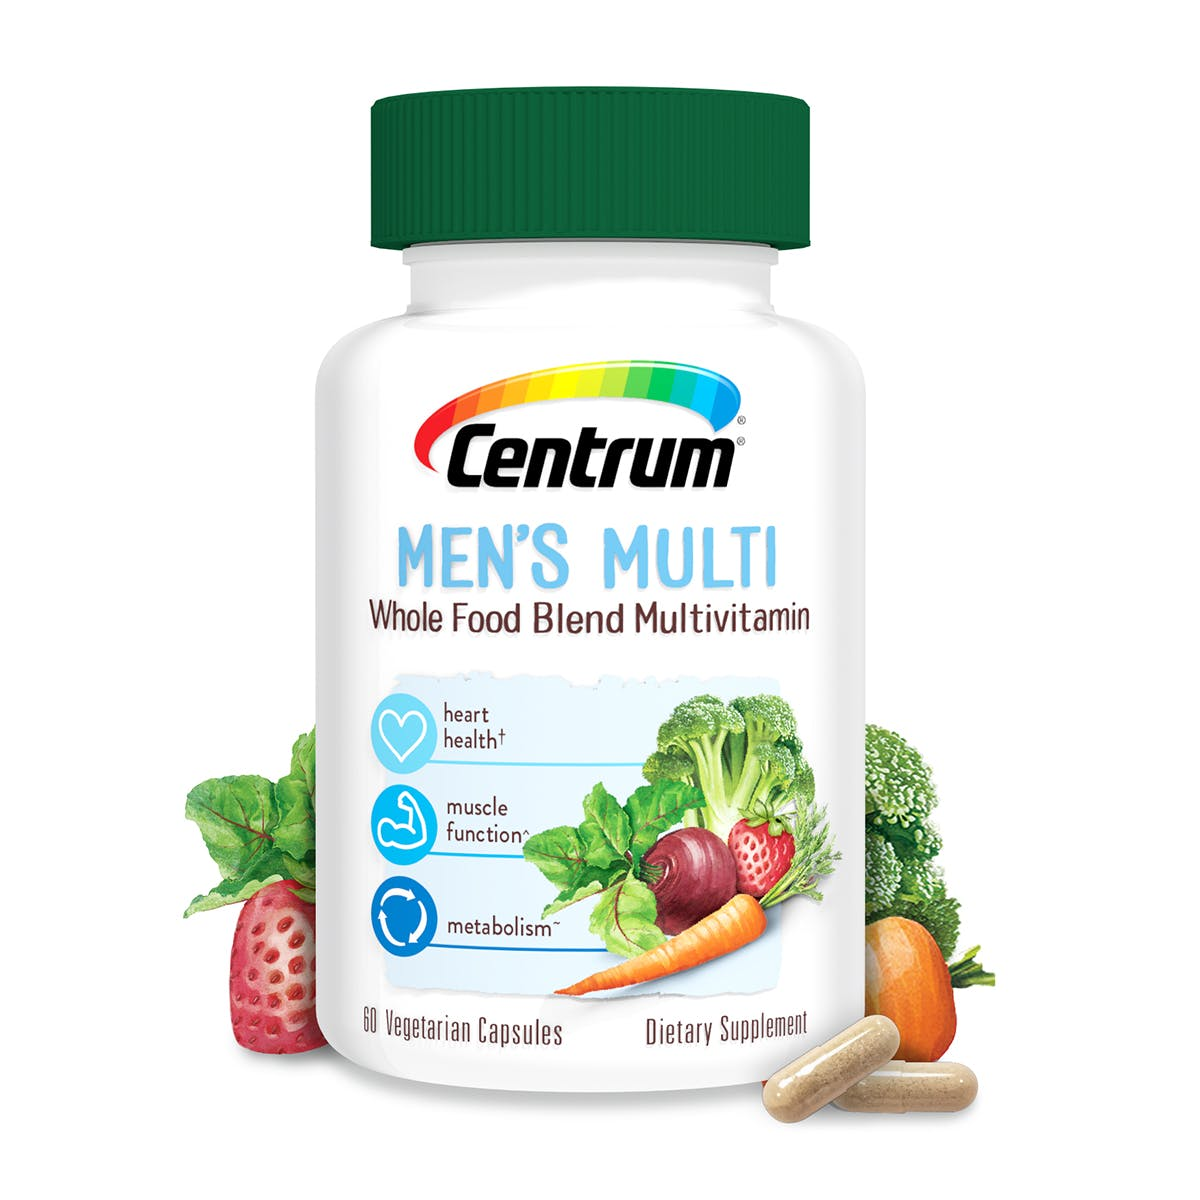 Centrum Men's Whole Food Blend Multivitamin